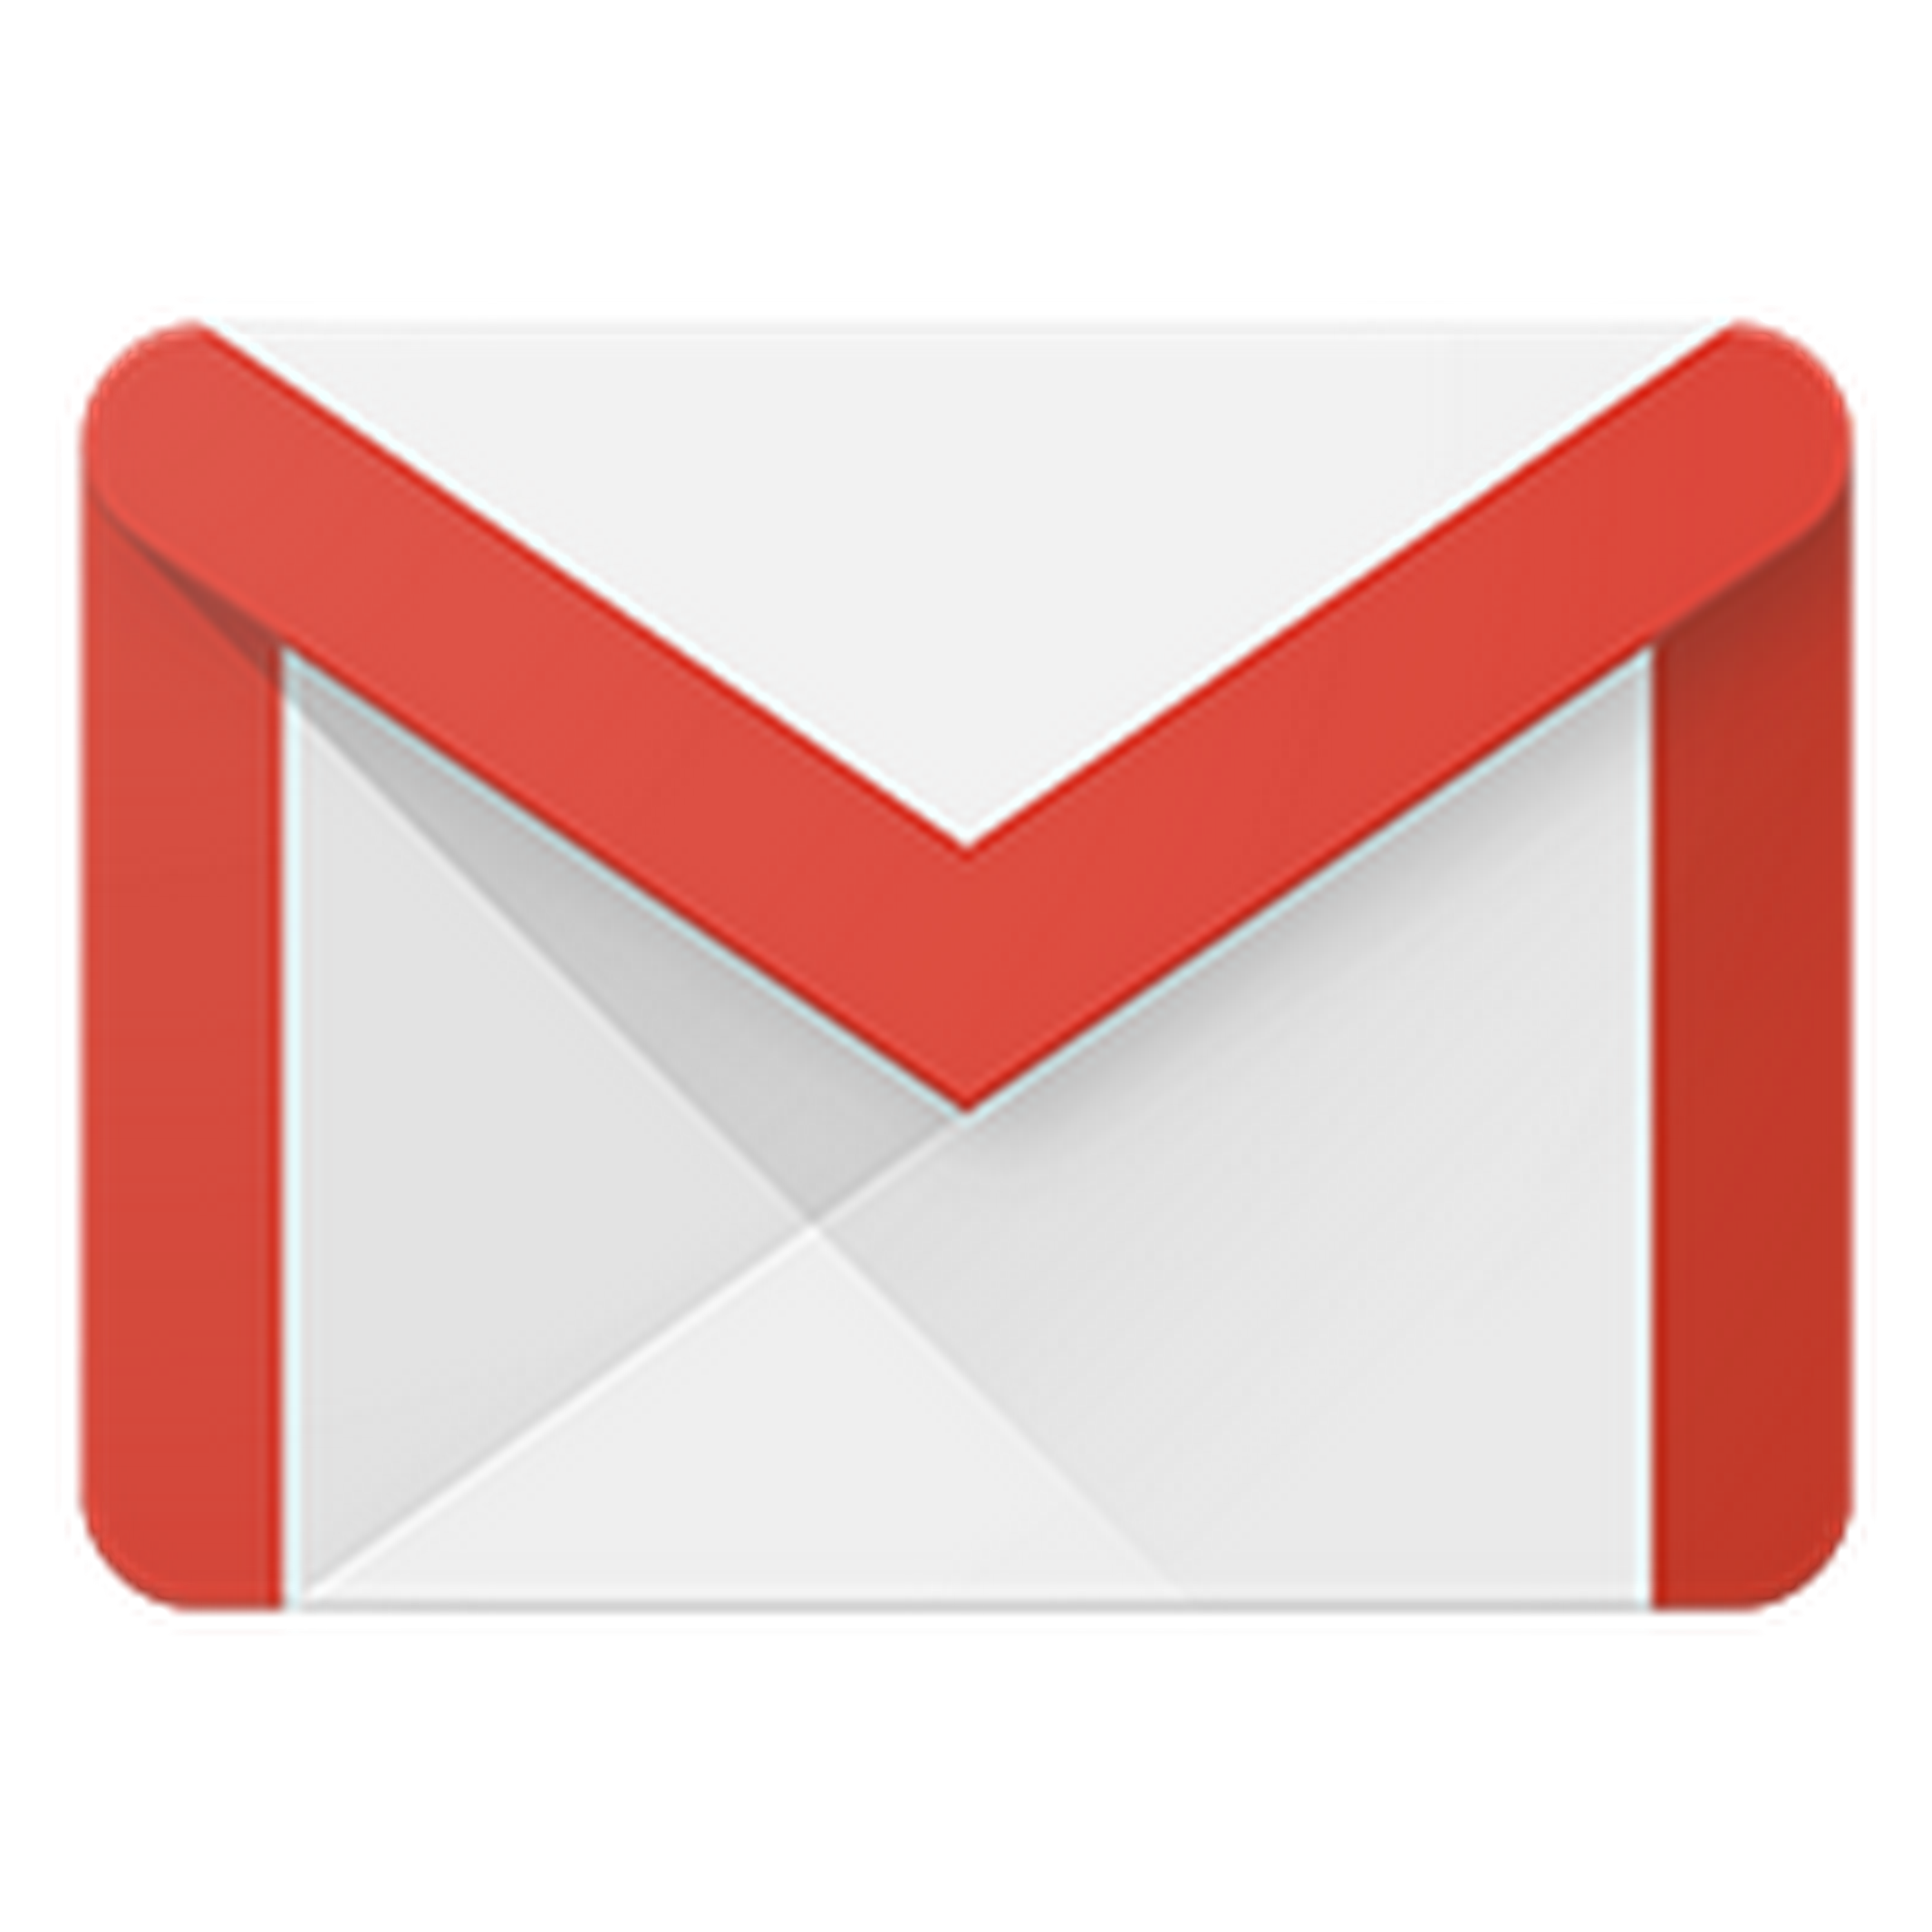 Gmail v8.6 Adds Unsubscribe Tips And Promotional Email Bundling